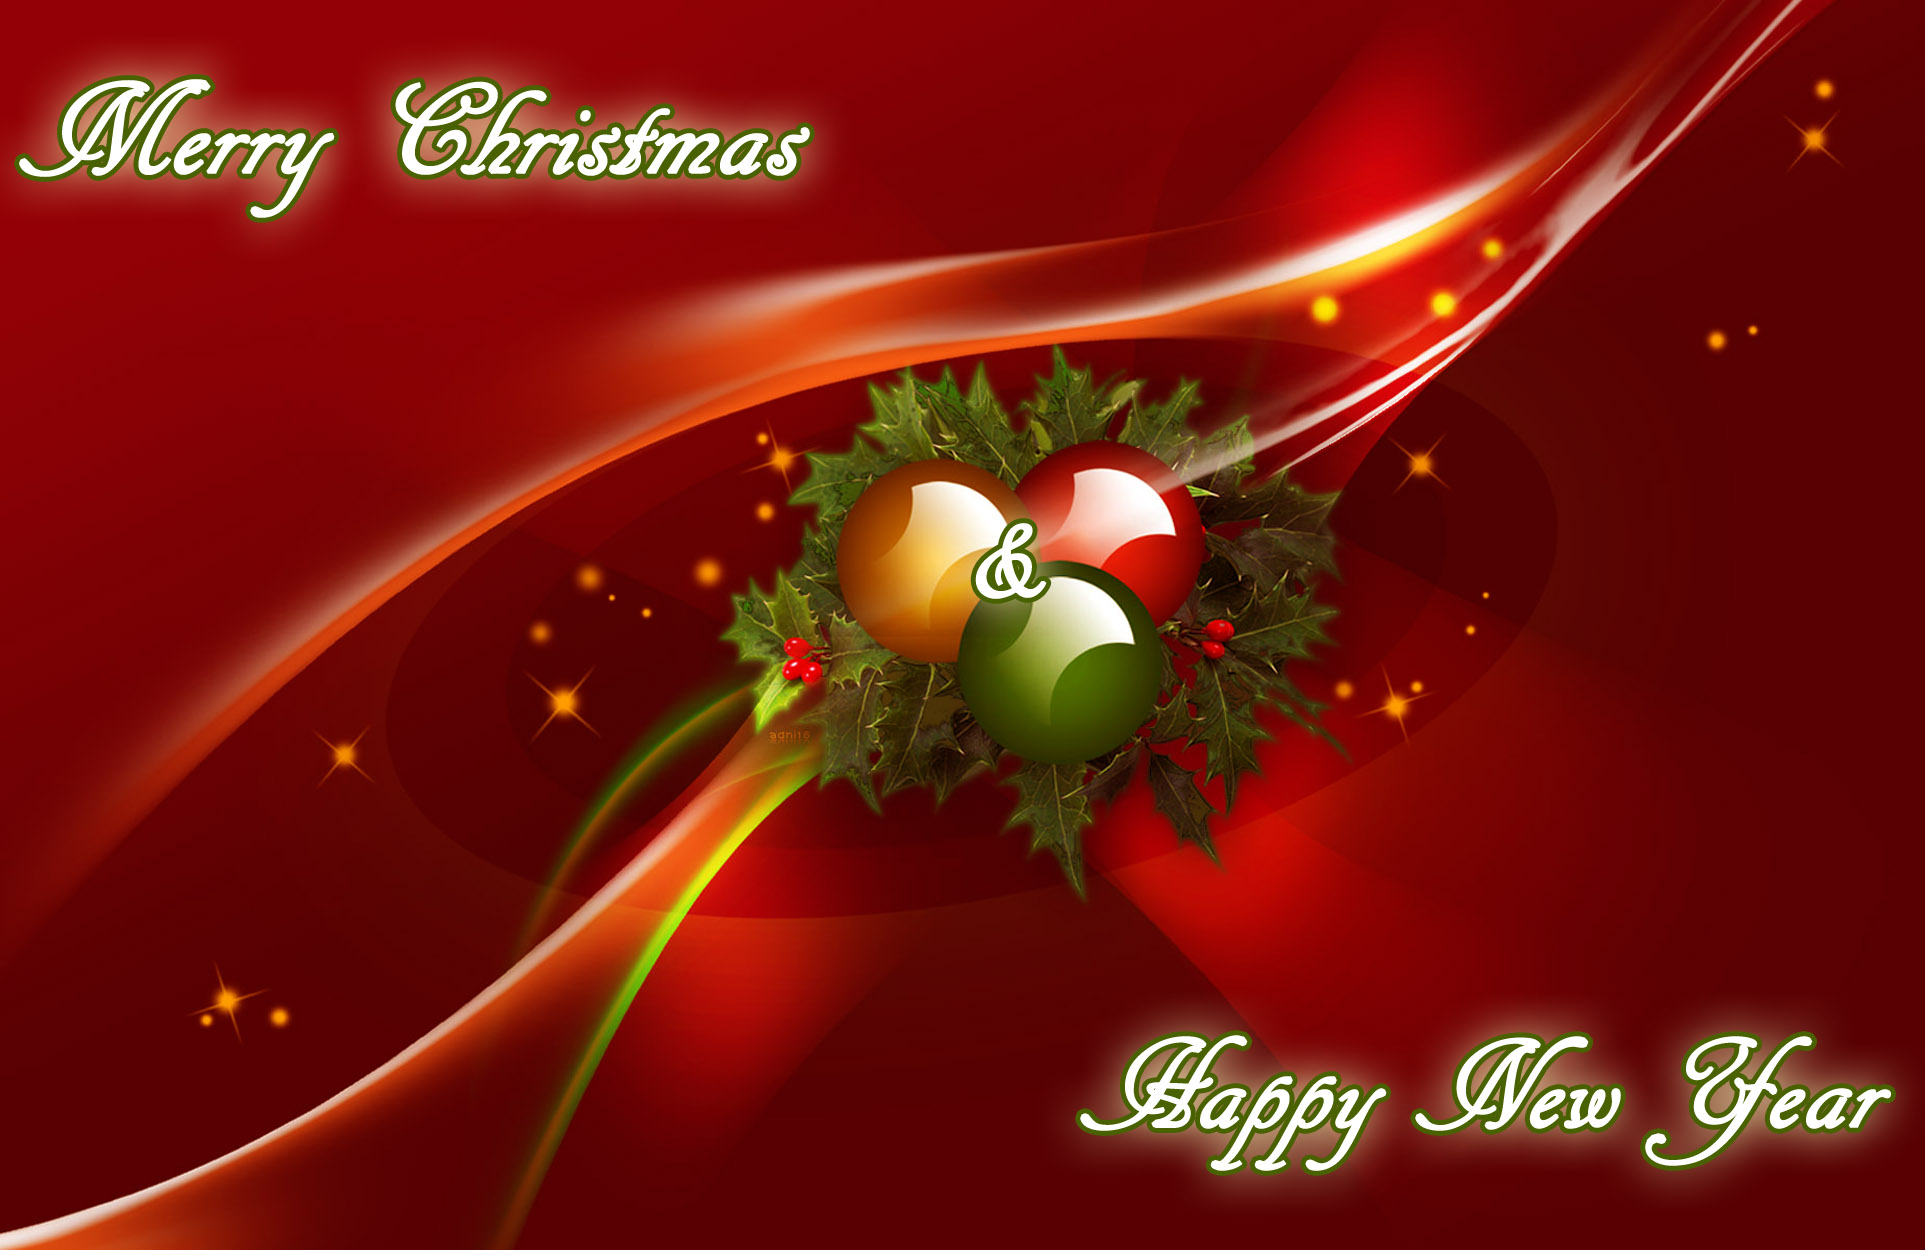 new year 2014 Christmas 2013 wallpaper greeting e cards – Travel ...